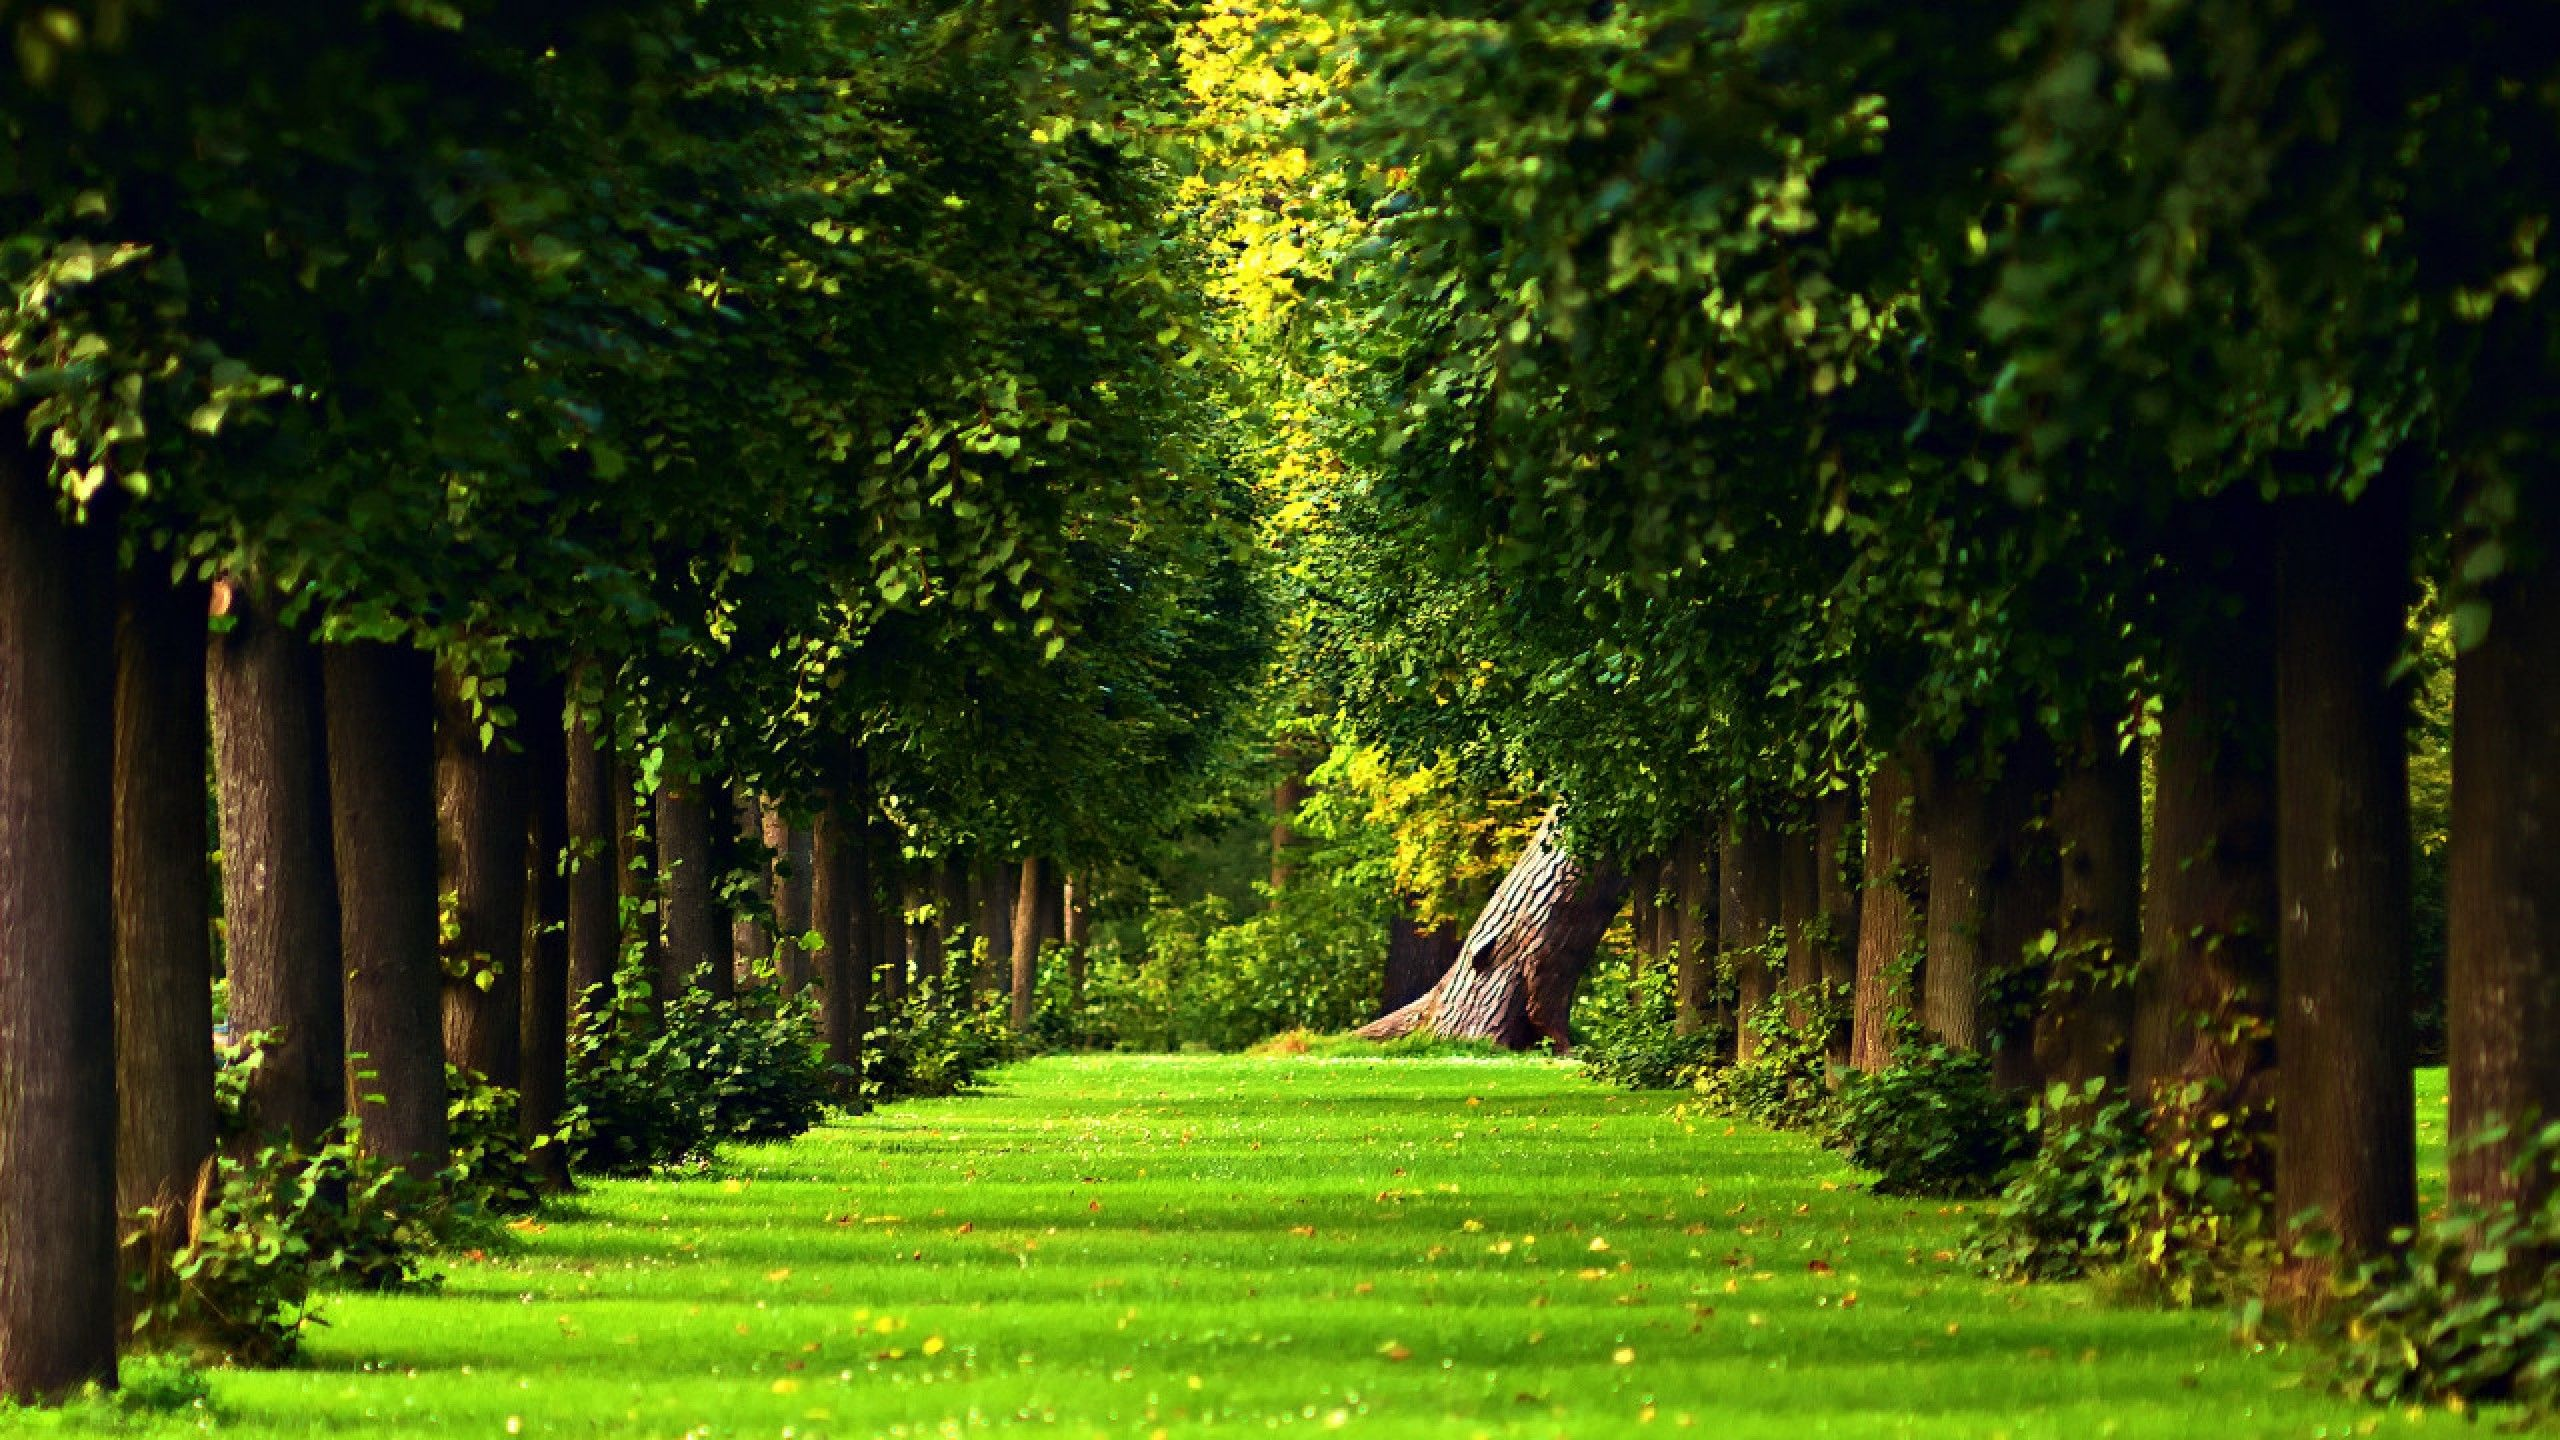 Hd wallpaper nature green - Undefined Hd Nature Wallpapers Pack 40 Wallpapers Adorable